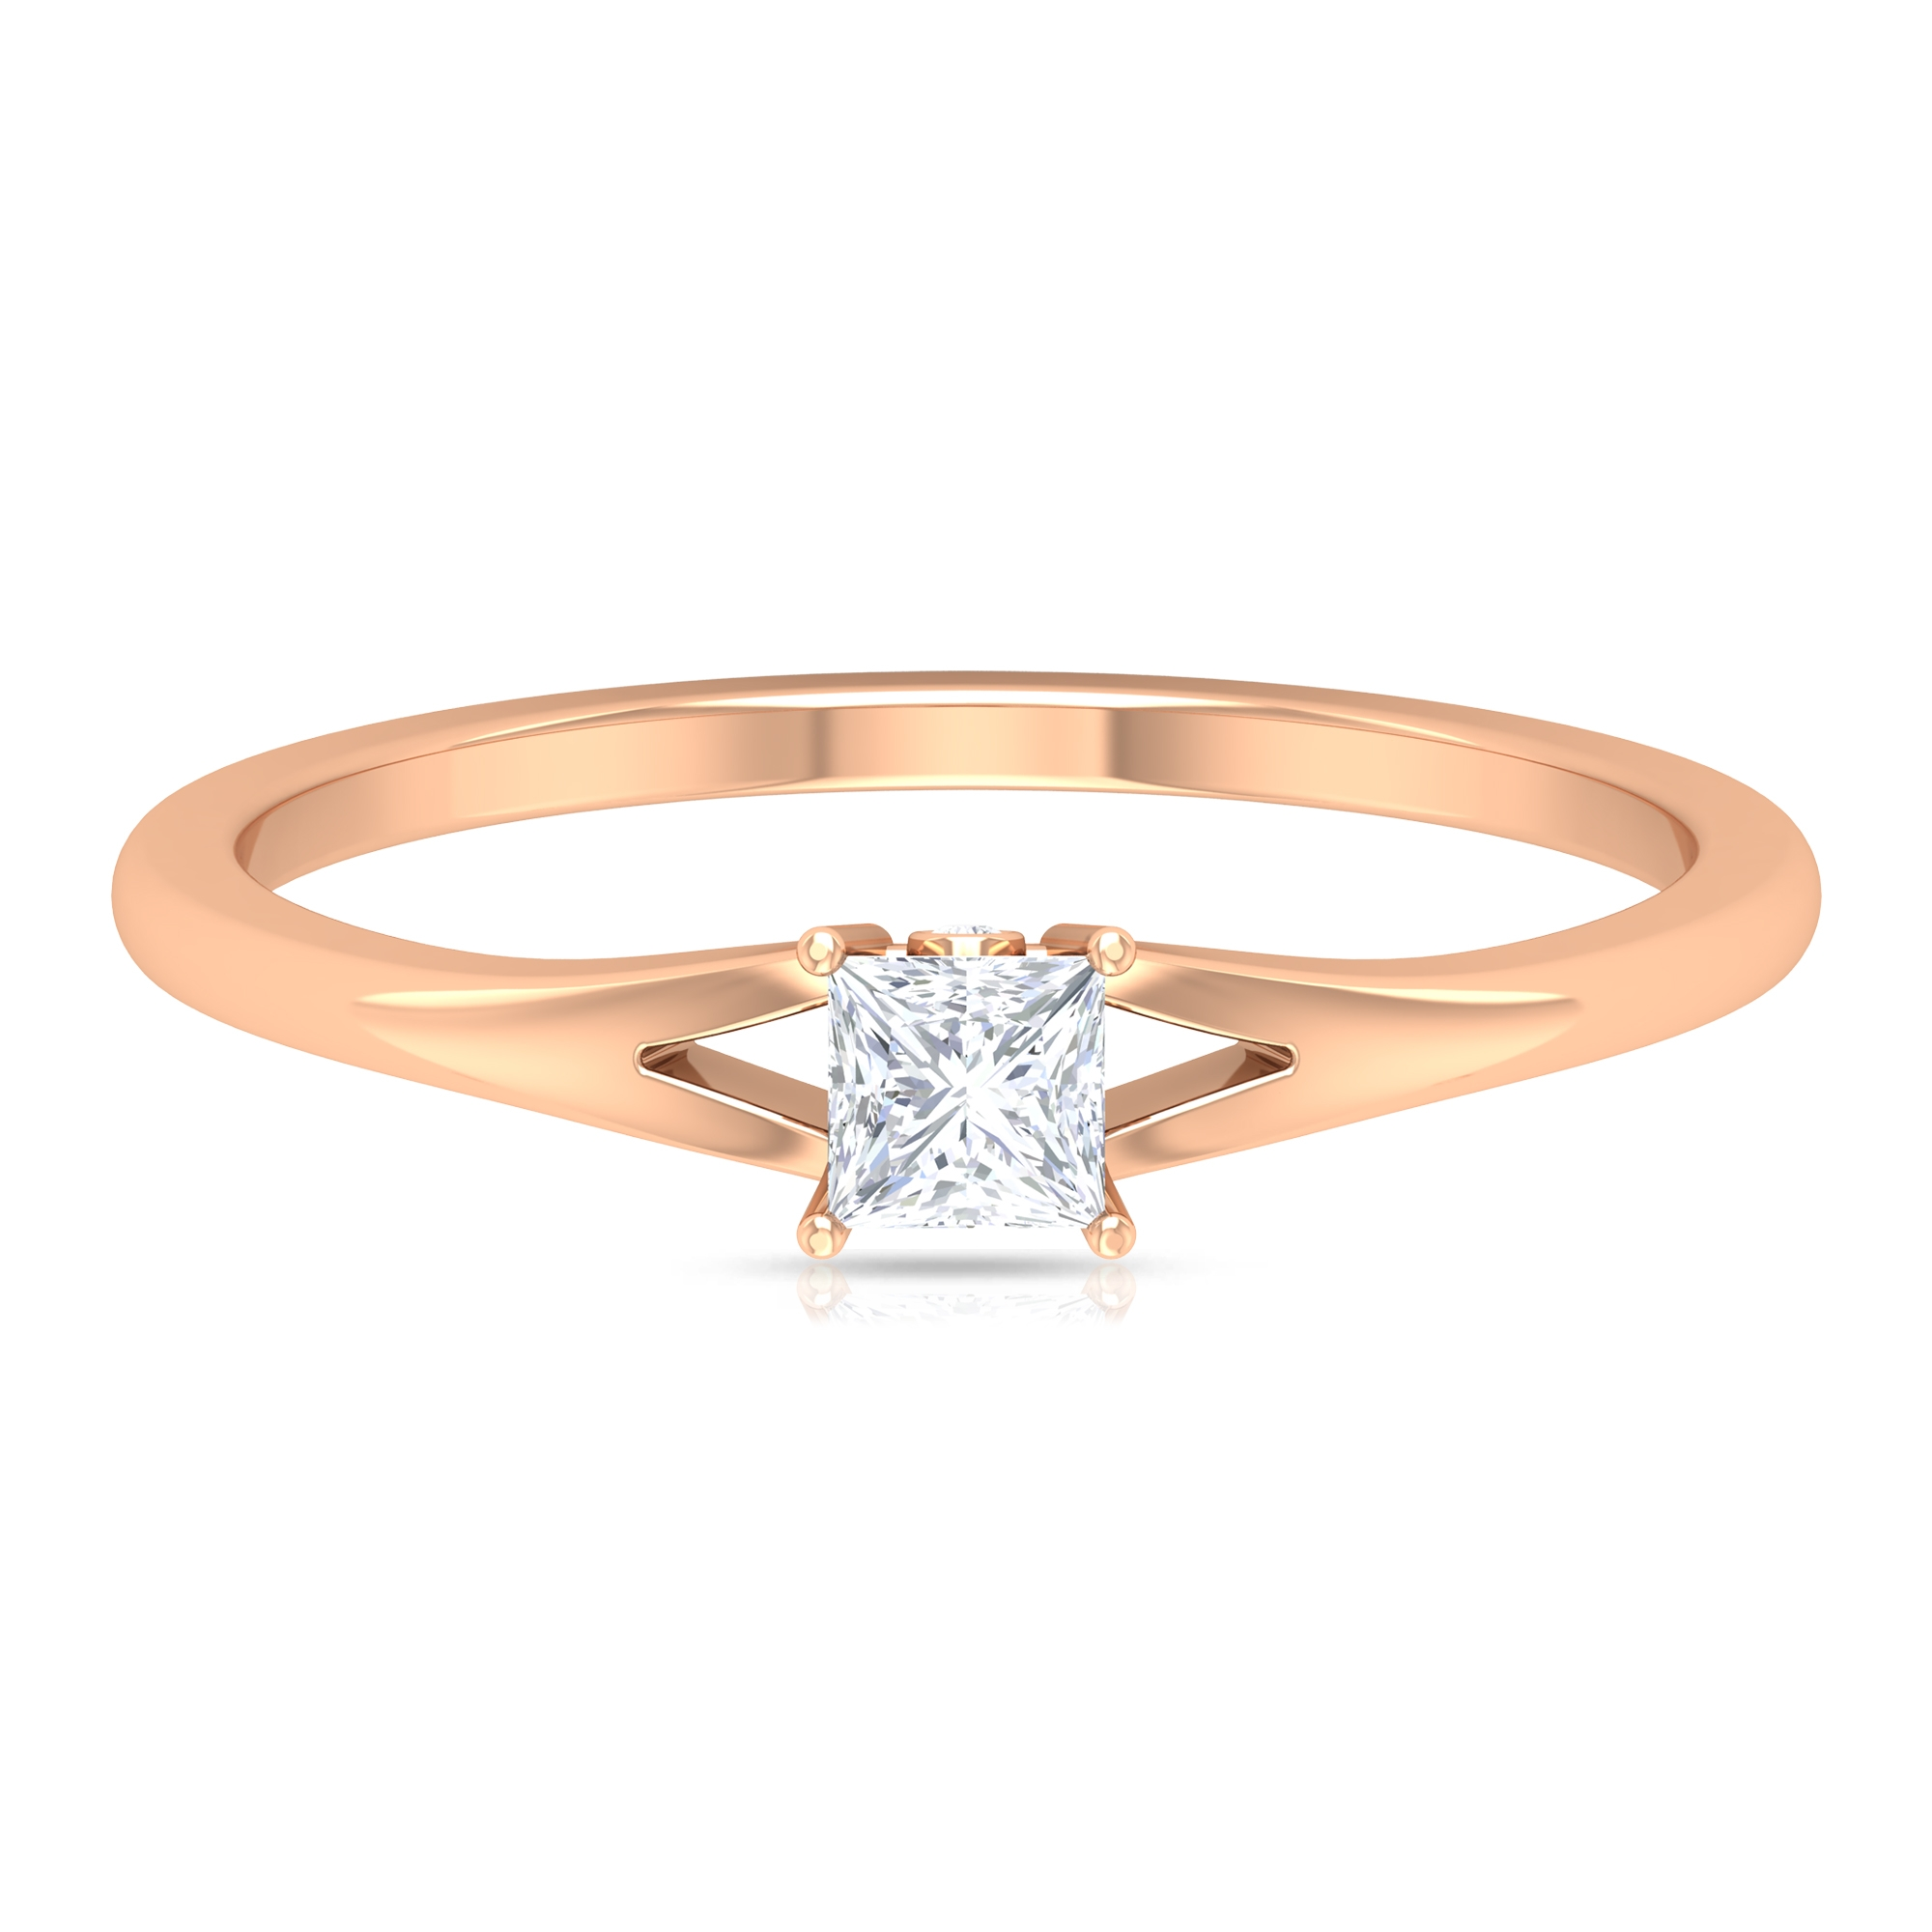 3.3 MM Princess Cut Diamond Solitaire Ring in Prong Setting with Split Shank